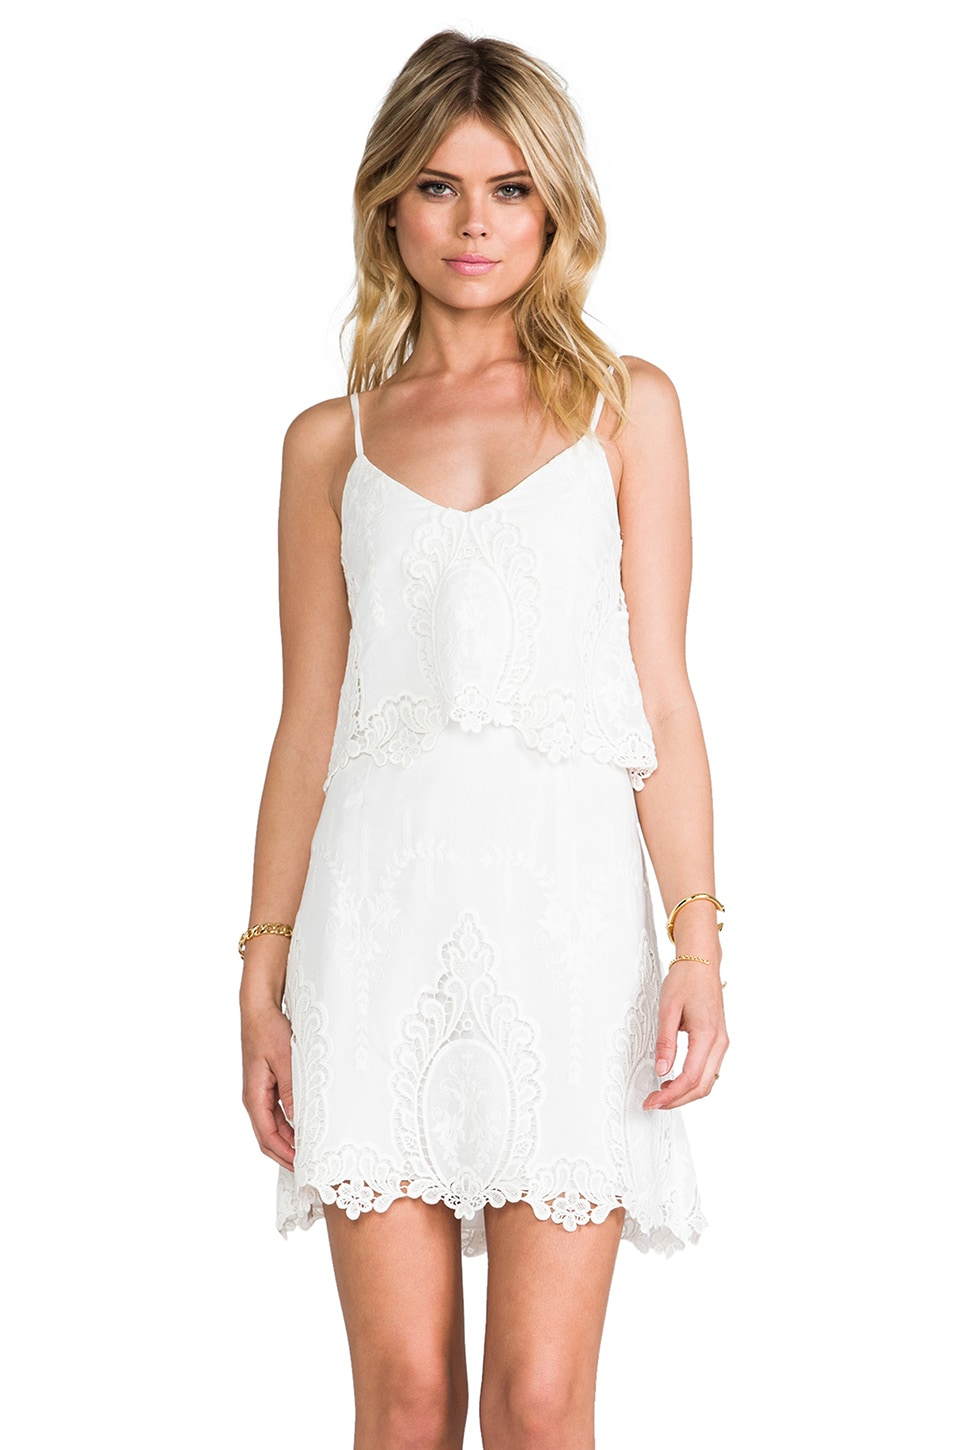 Dolce Vita Jeralyn Dress in White & Natural